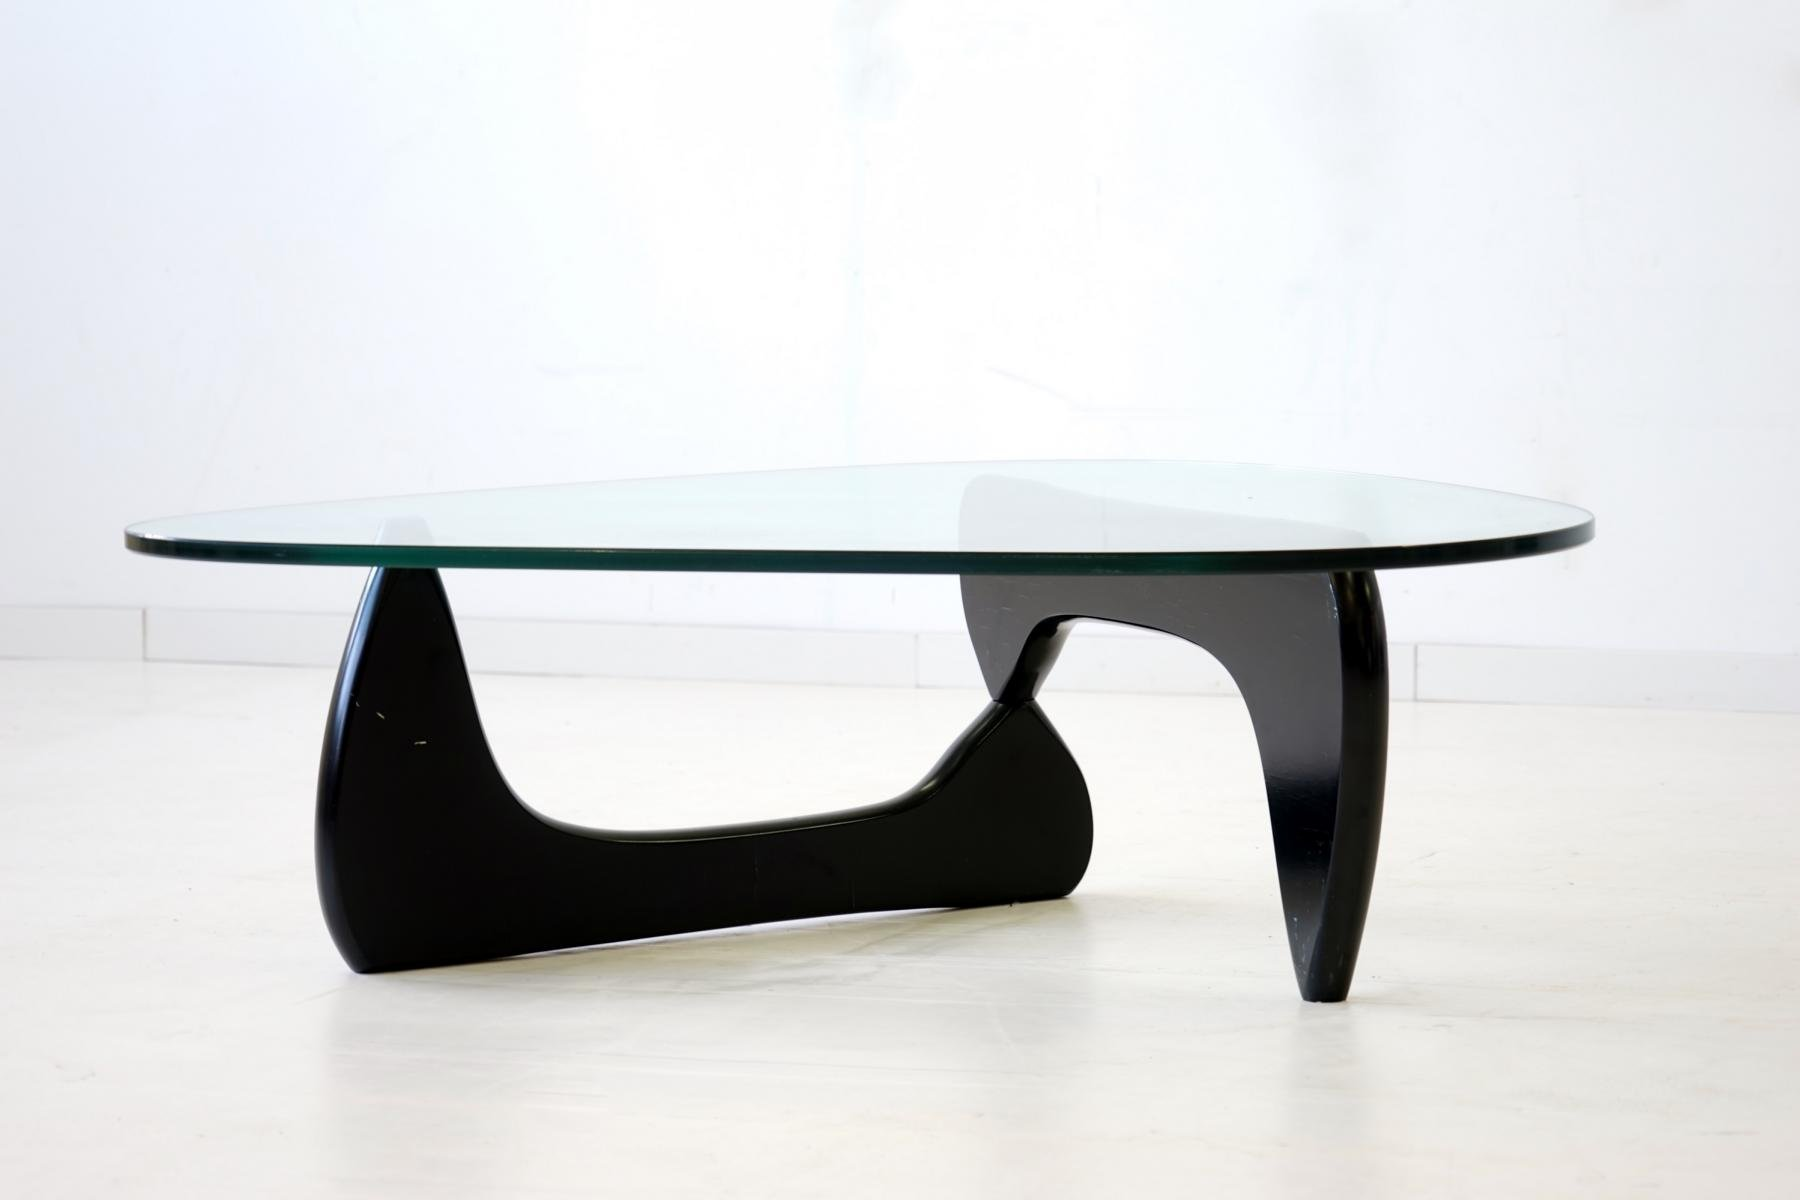 glass coffee table by isamu noguchi for herman miller 1960s for sale at pamono. Black Bedroom Furniture Sets. Home Design Ideas